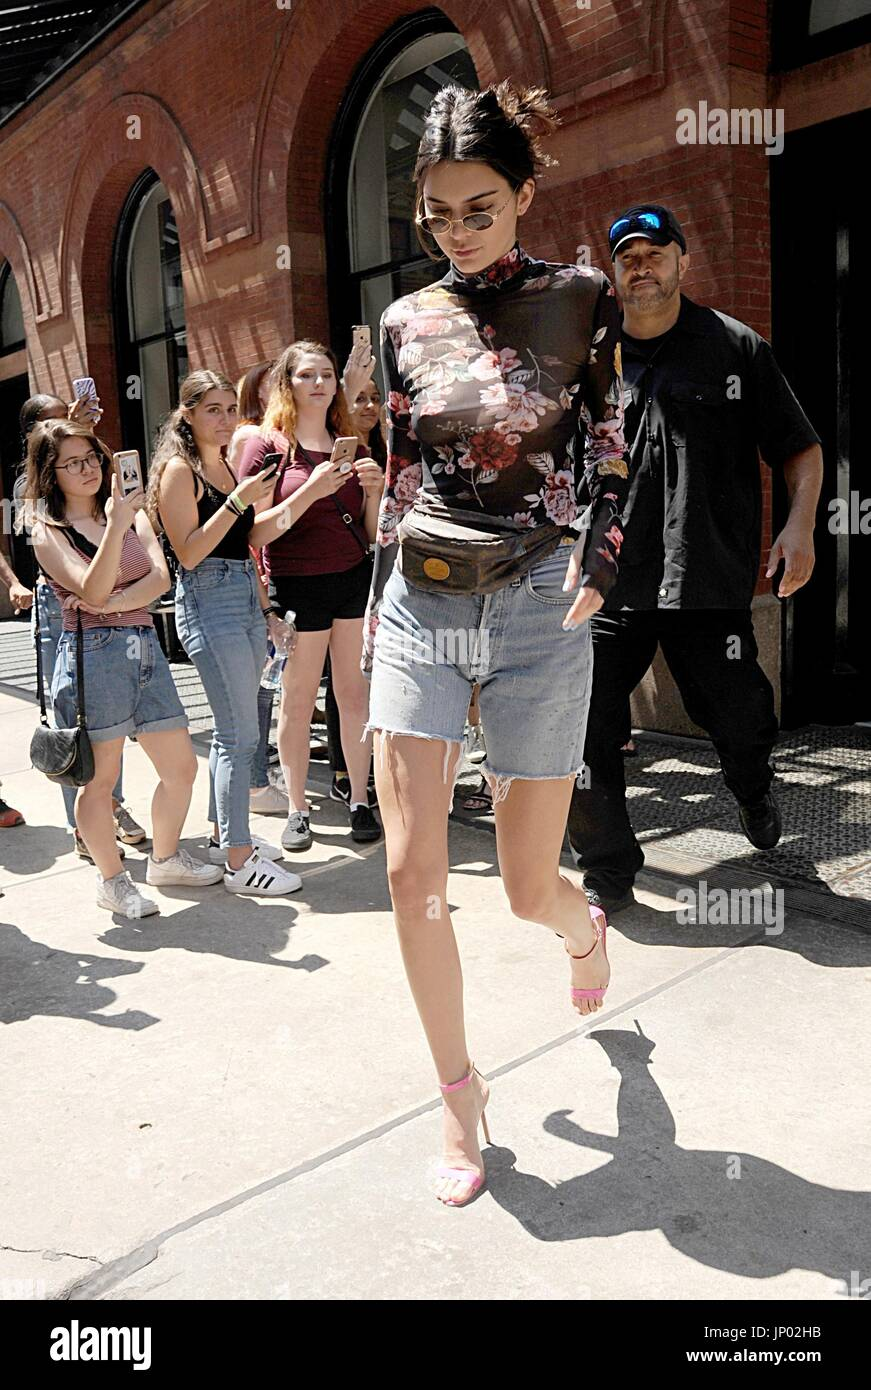 New York, NY, USA. 31st July, 2017. Kendall Jenner out and about for Celebrity Candids - MON, New York, NY July - Stock Image